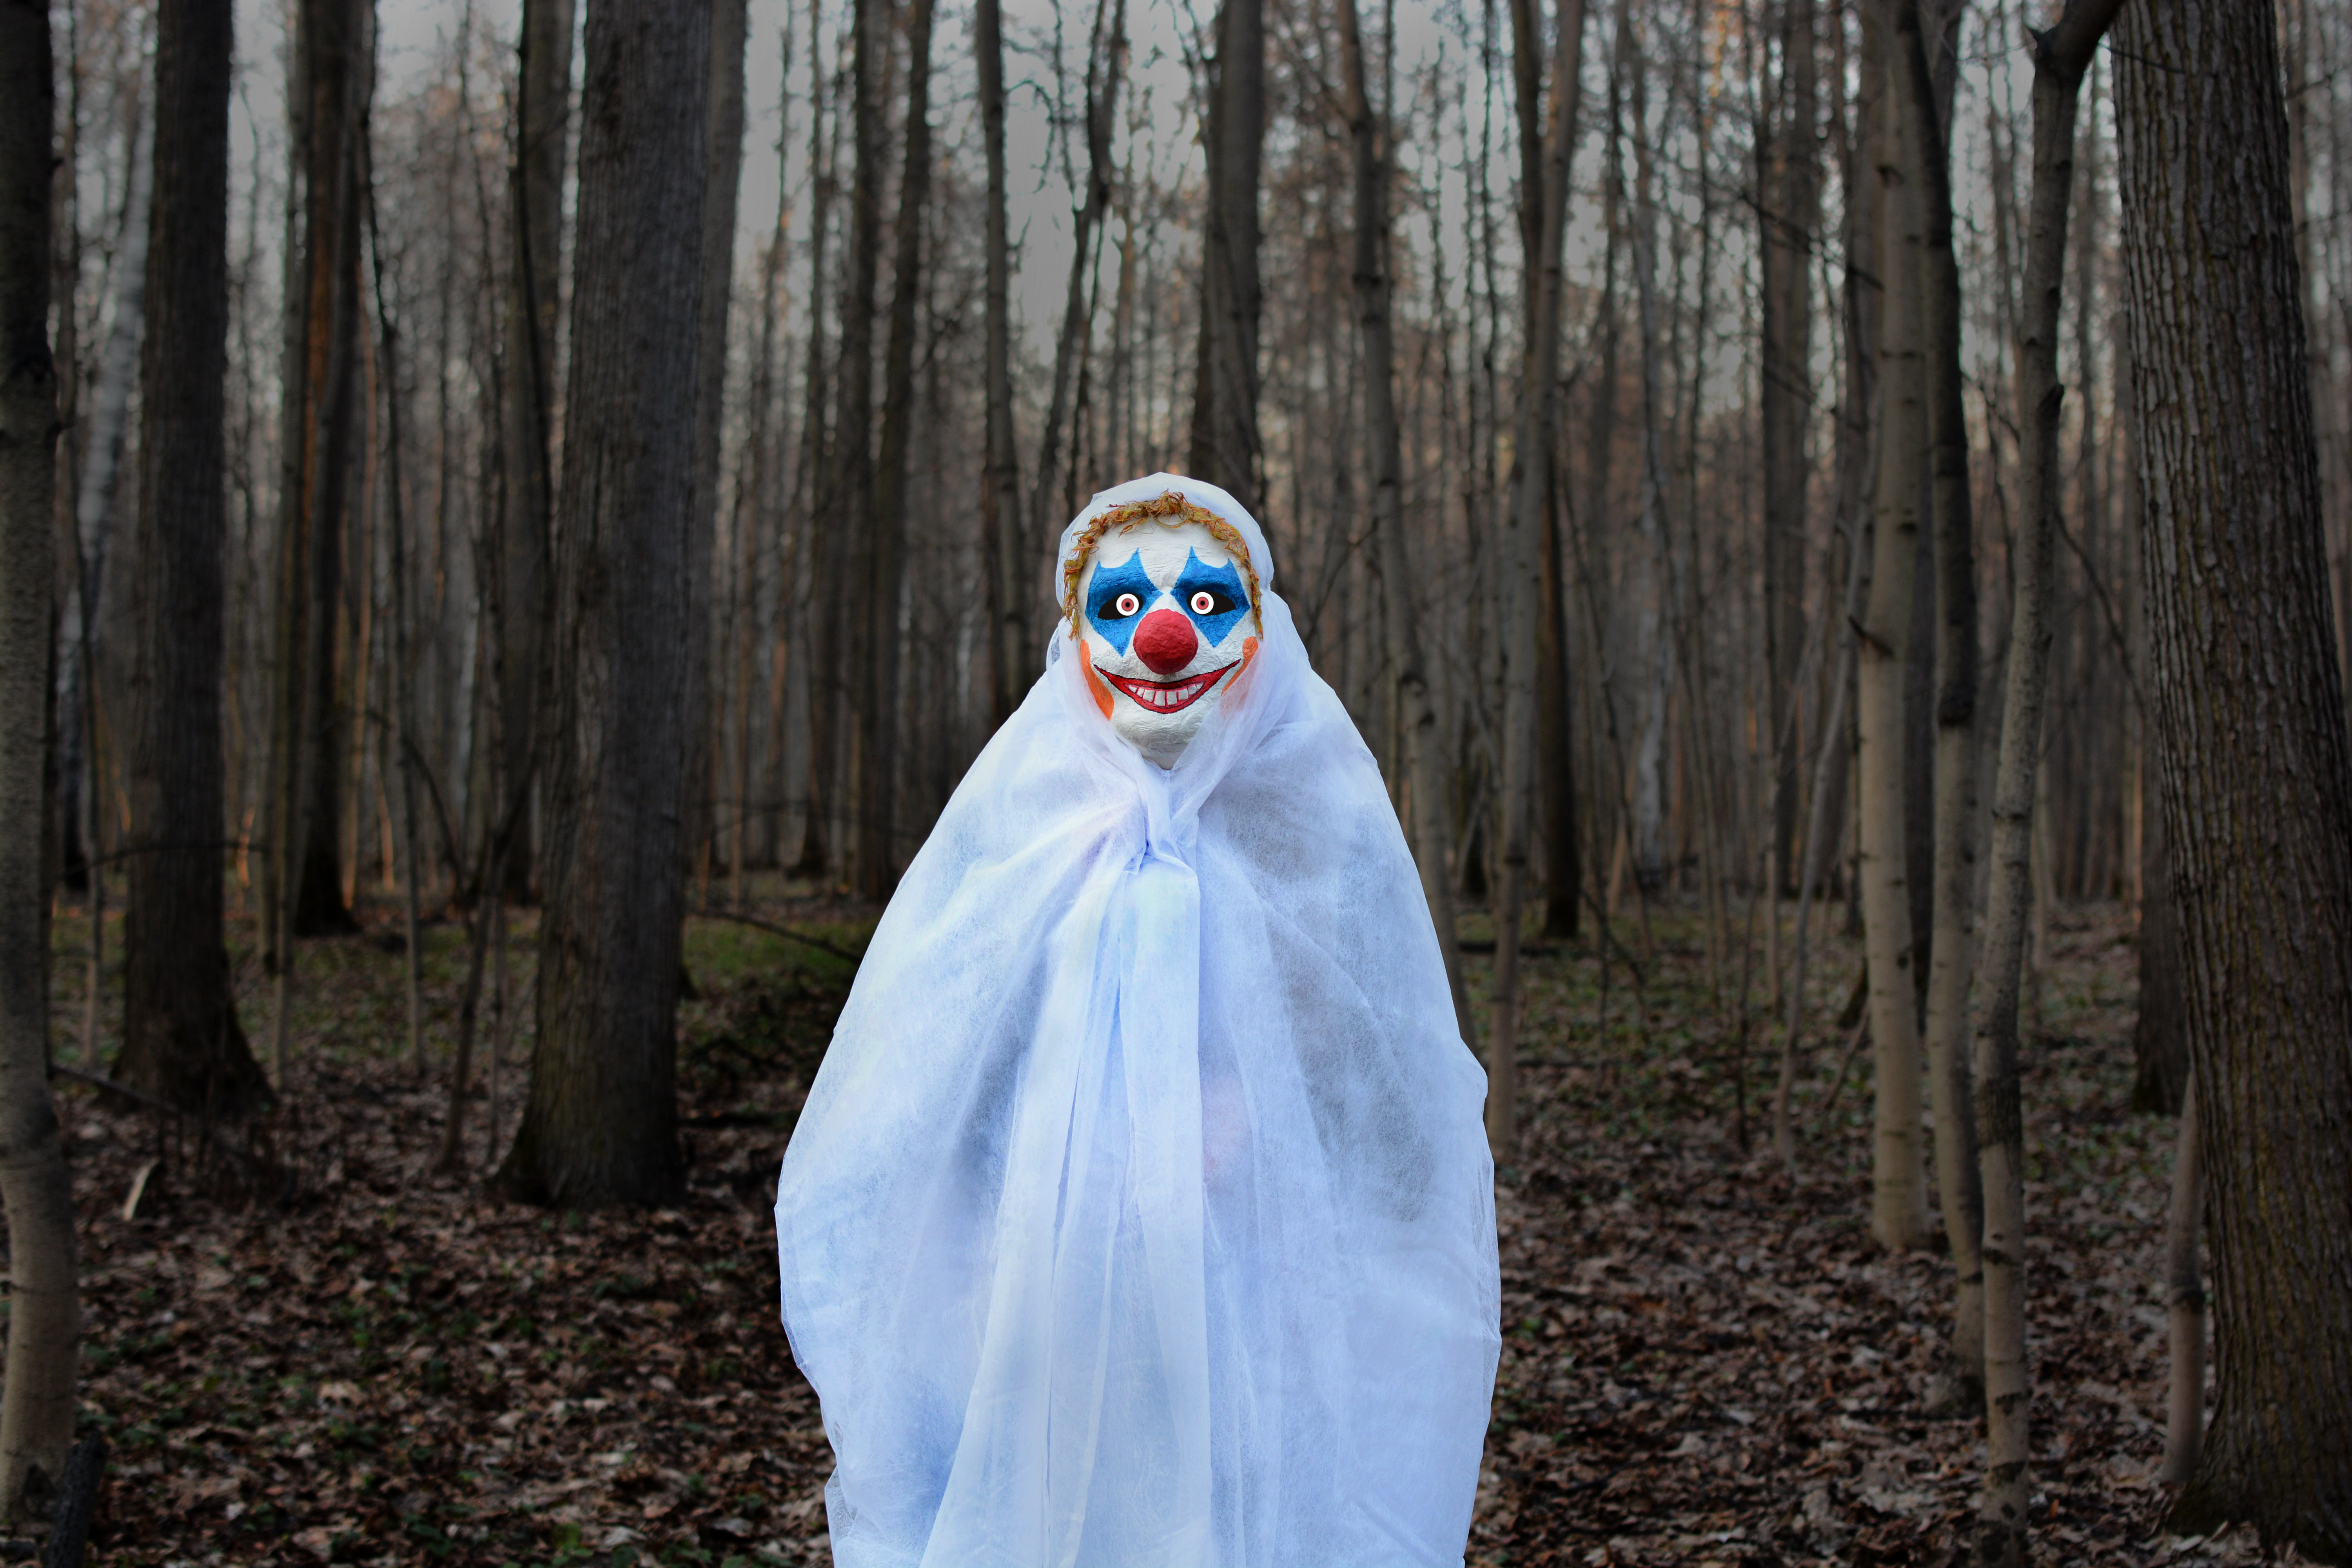 A 2008 study found few children actually like clowns.